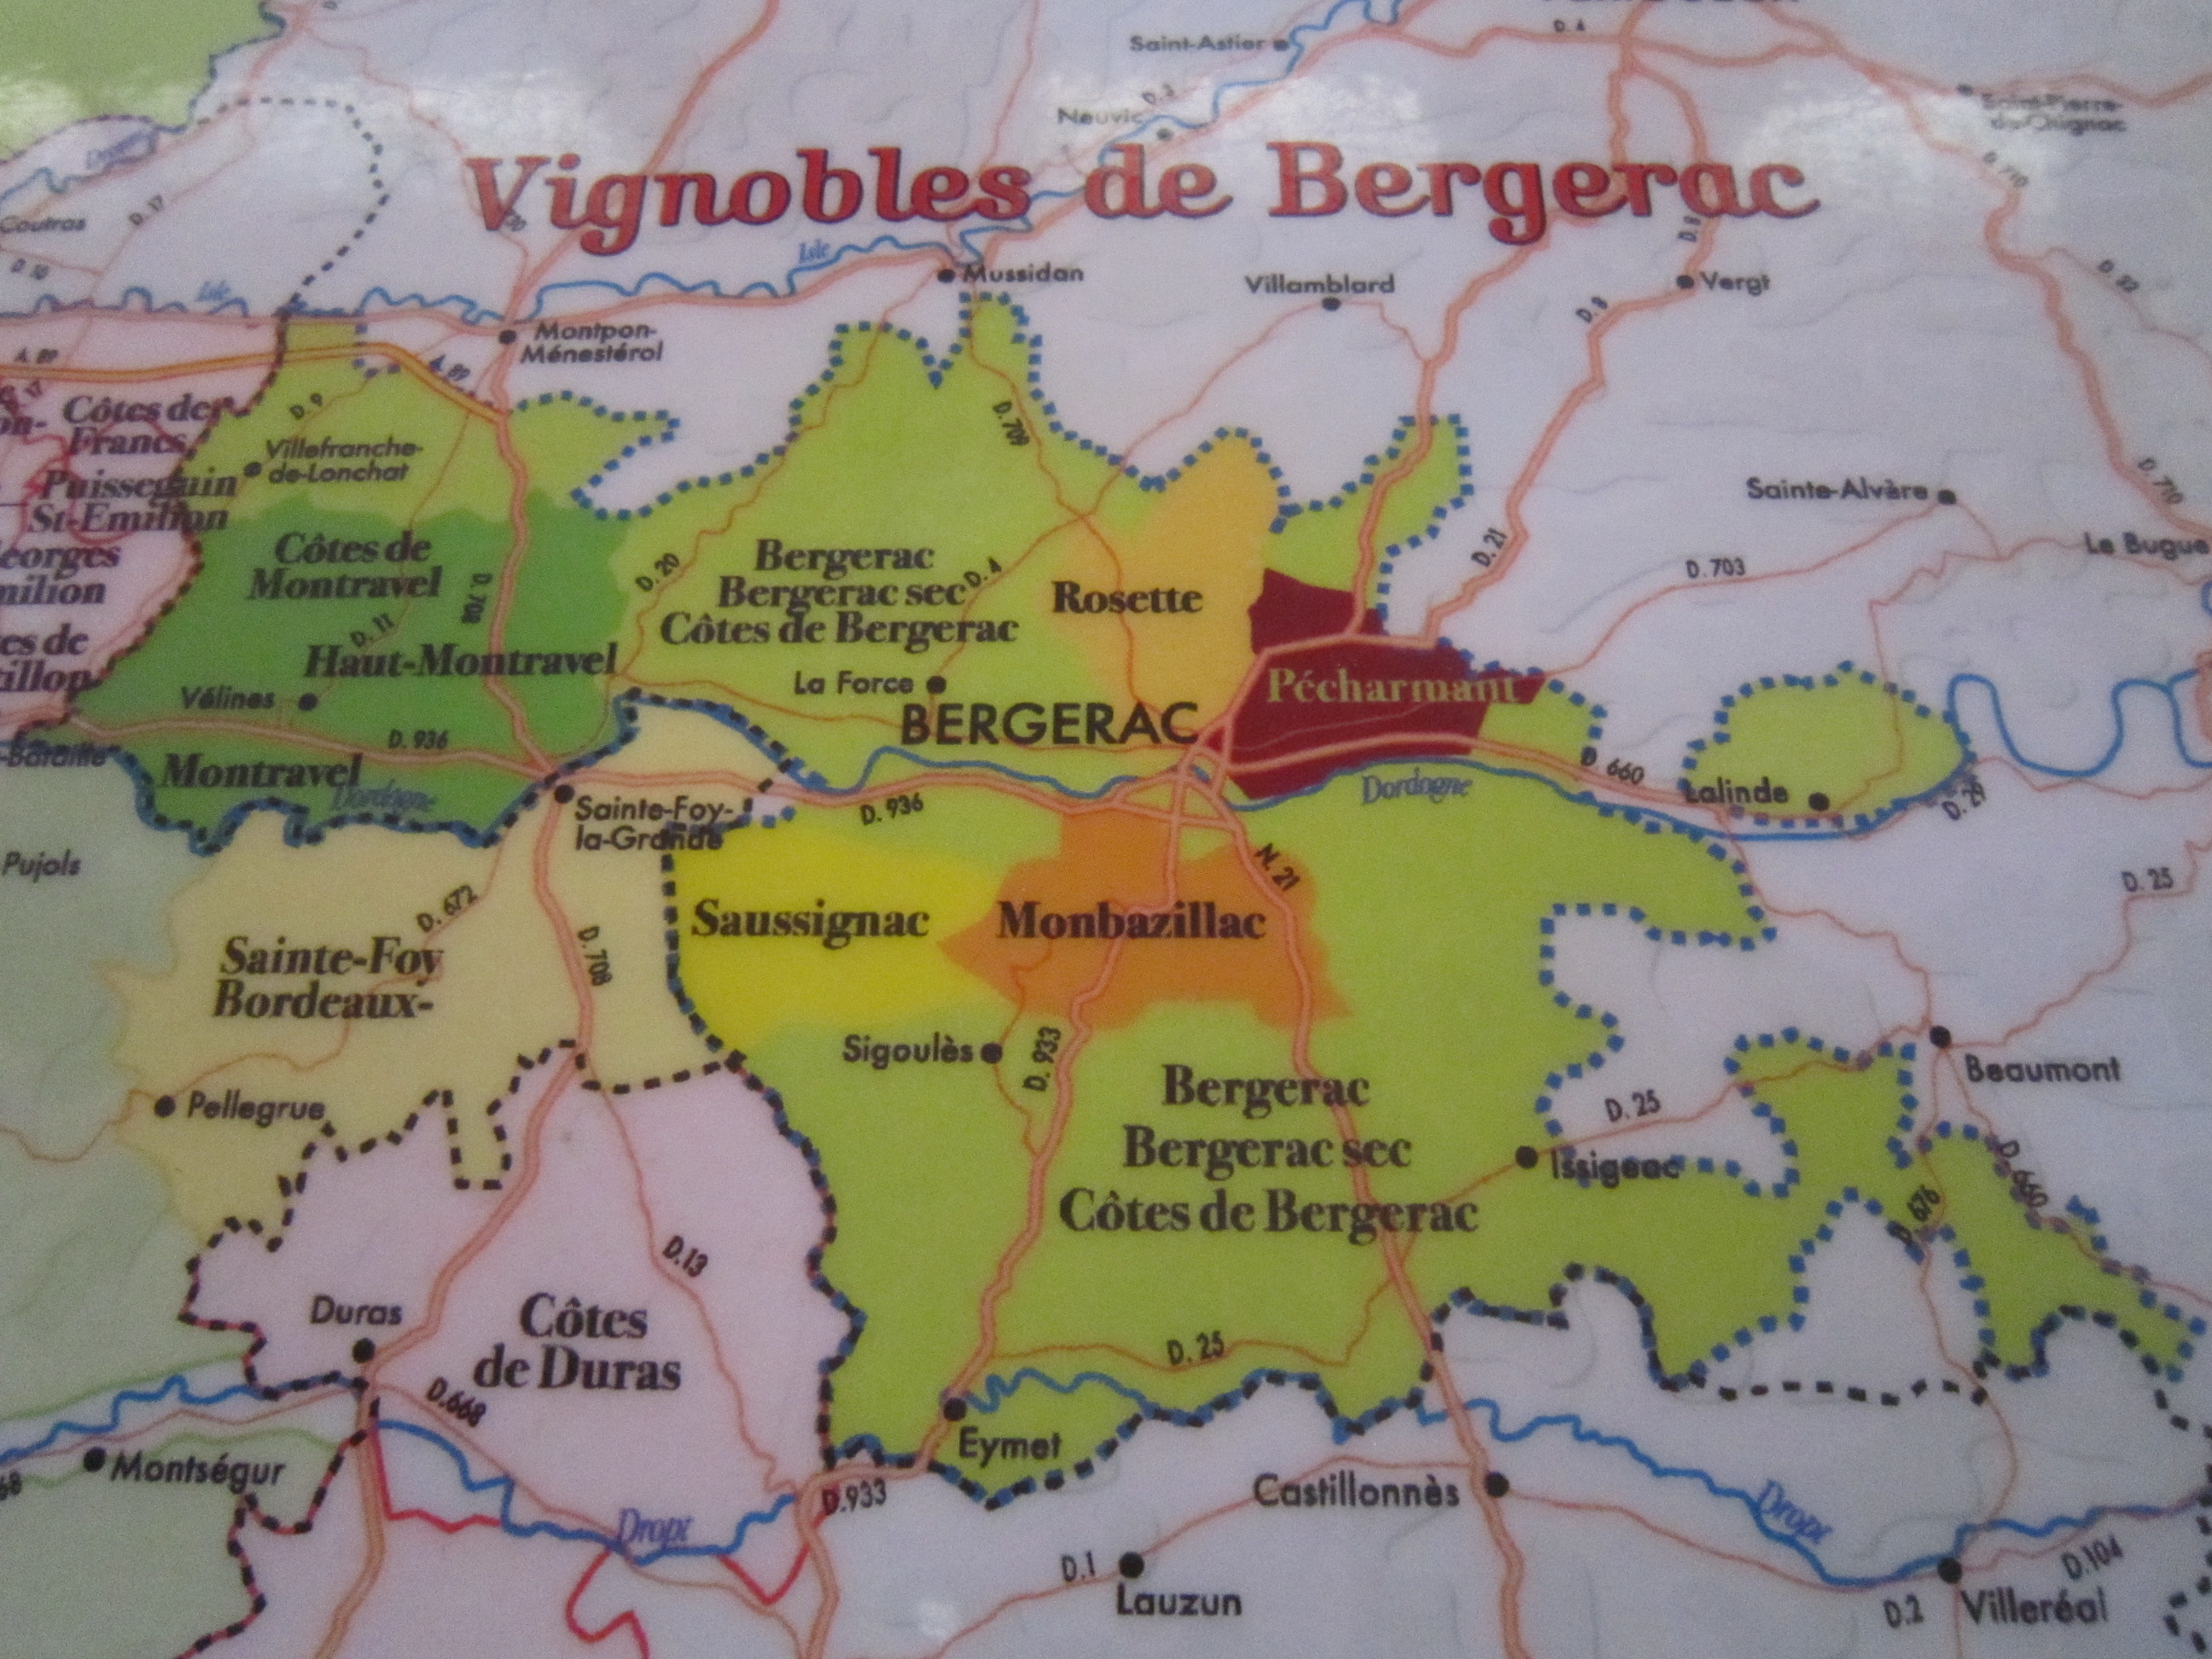 bordeaux wine map with The Bergerac Wine Region South West France An Introduction on 119606 together with Superieur Cheap Bordeaux Wine furthermore European Wine Bloggers Conference Izmir Turkey Confused in addition Vin De Pays Map uMZURx hRYPRbMaagQPtjto sD3CIz 7CDkNNObgR1IQ furthermore The Bergerac Wine Region South West France An Introduction.